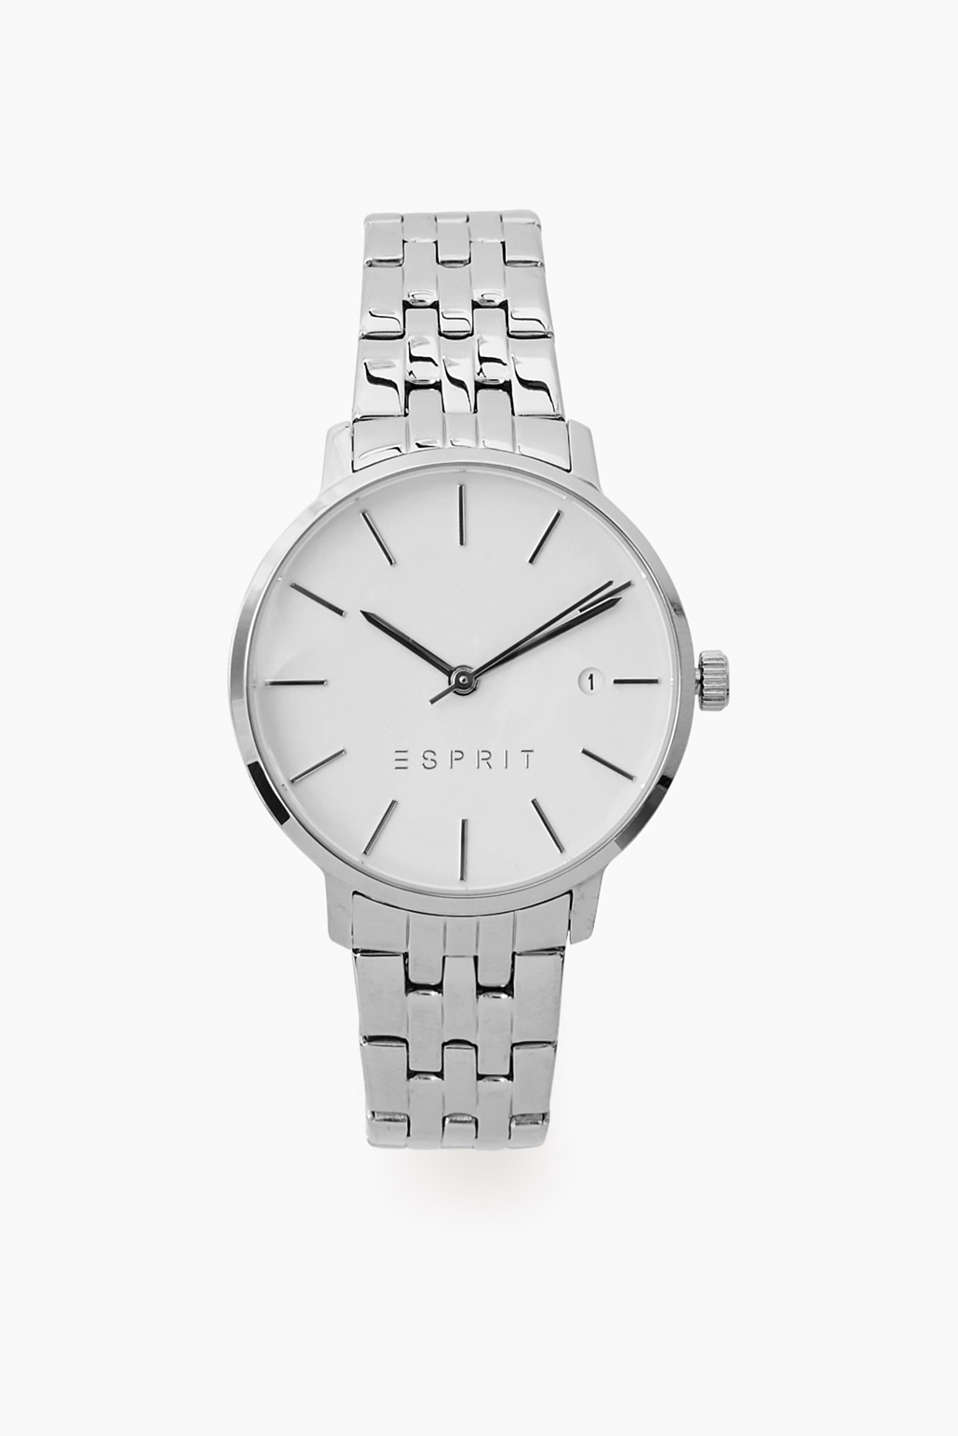 Watch with polished stainless steel watch case and strap, white dial, date, Ø approx. 34 mm